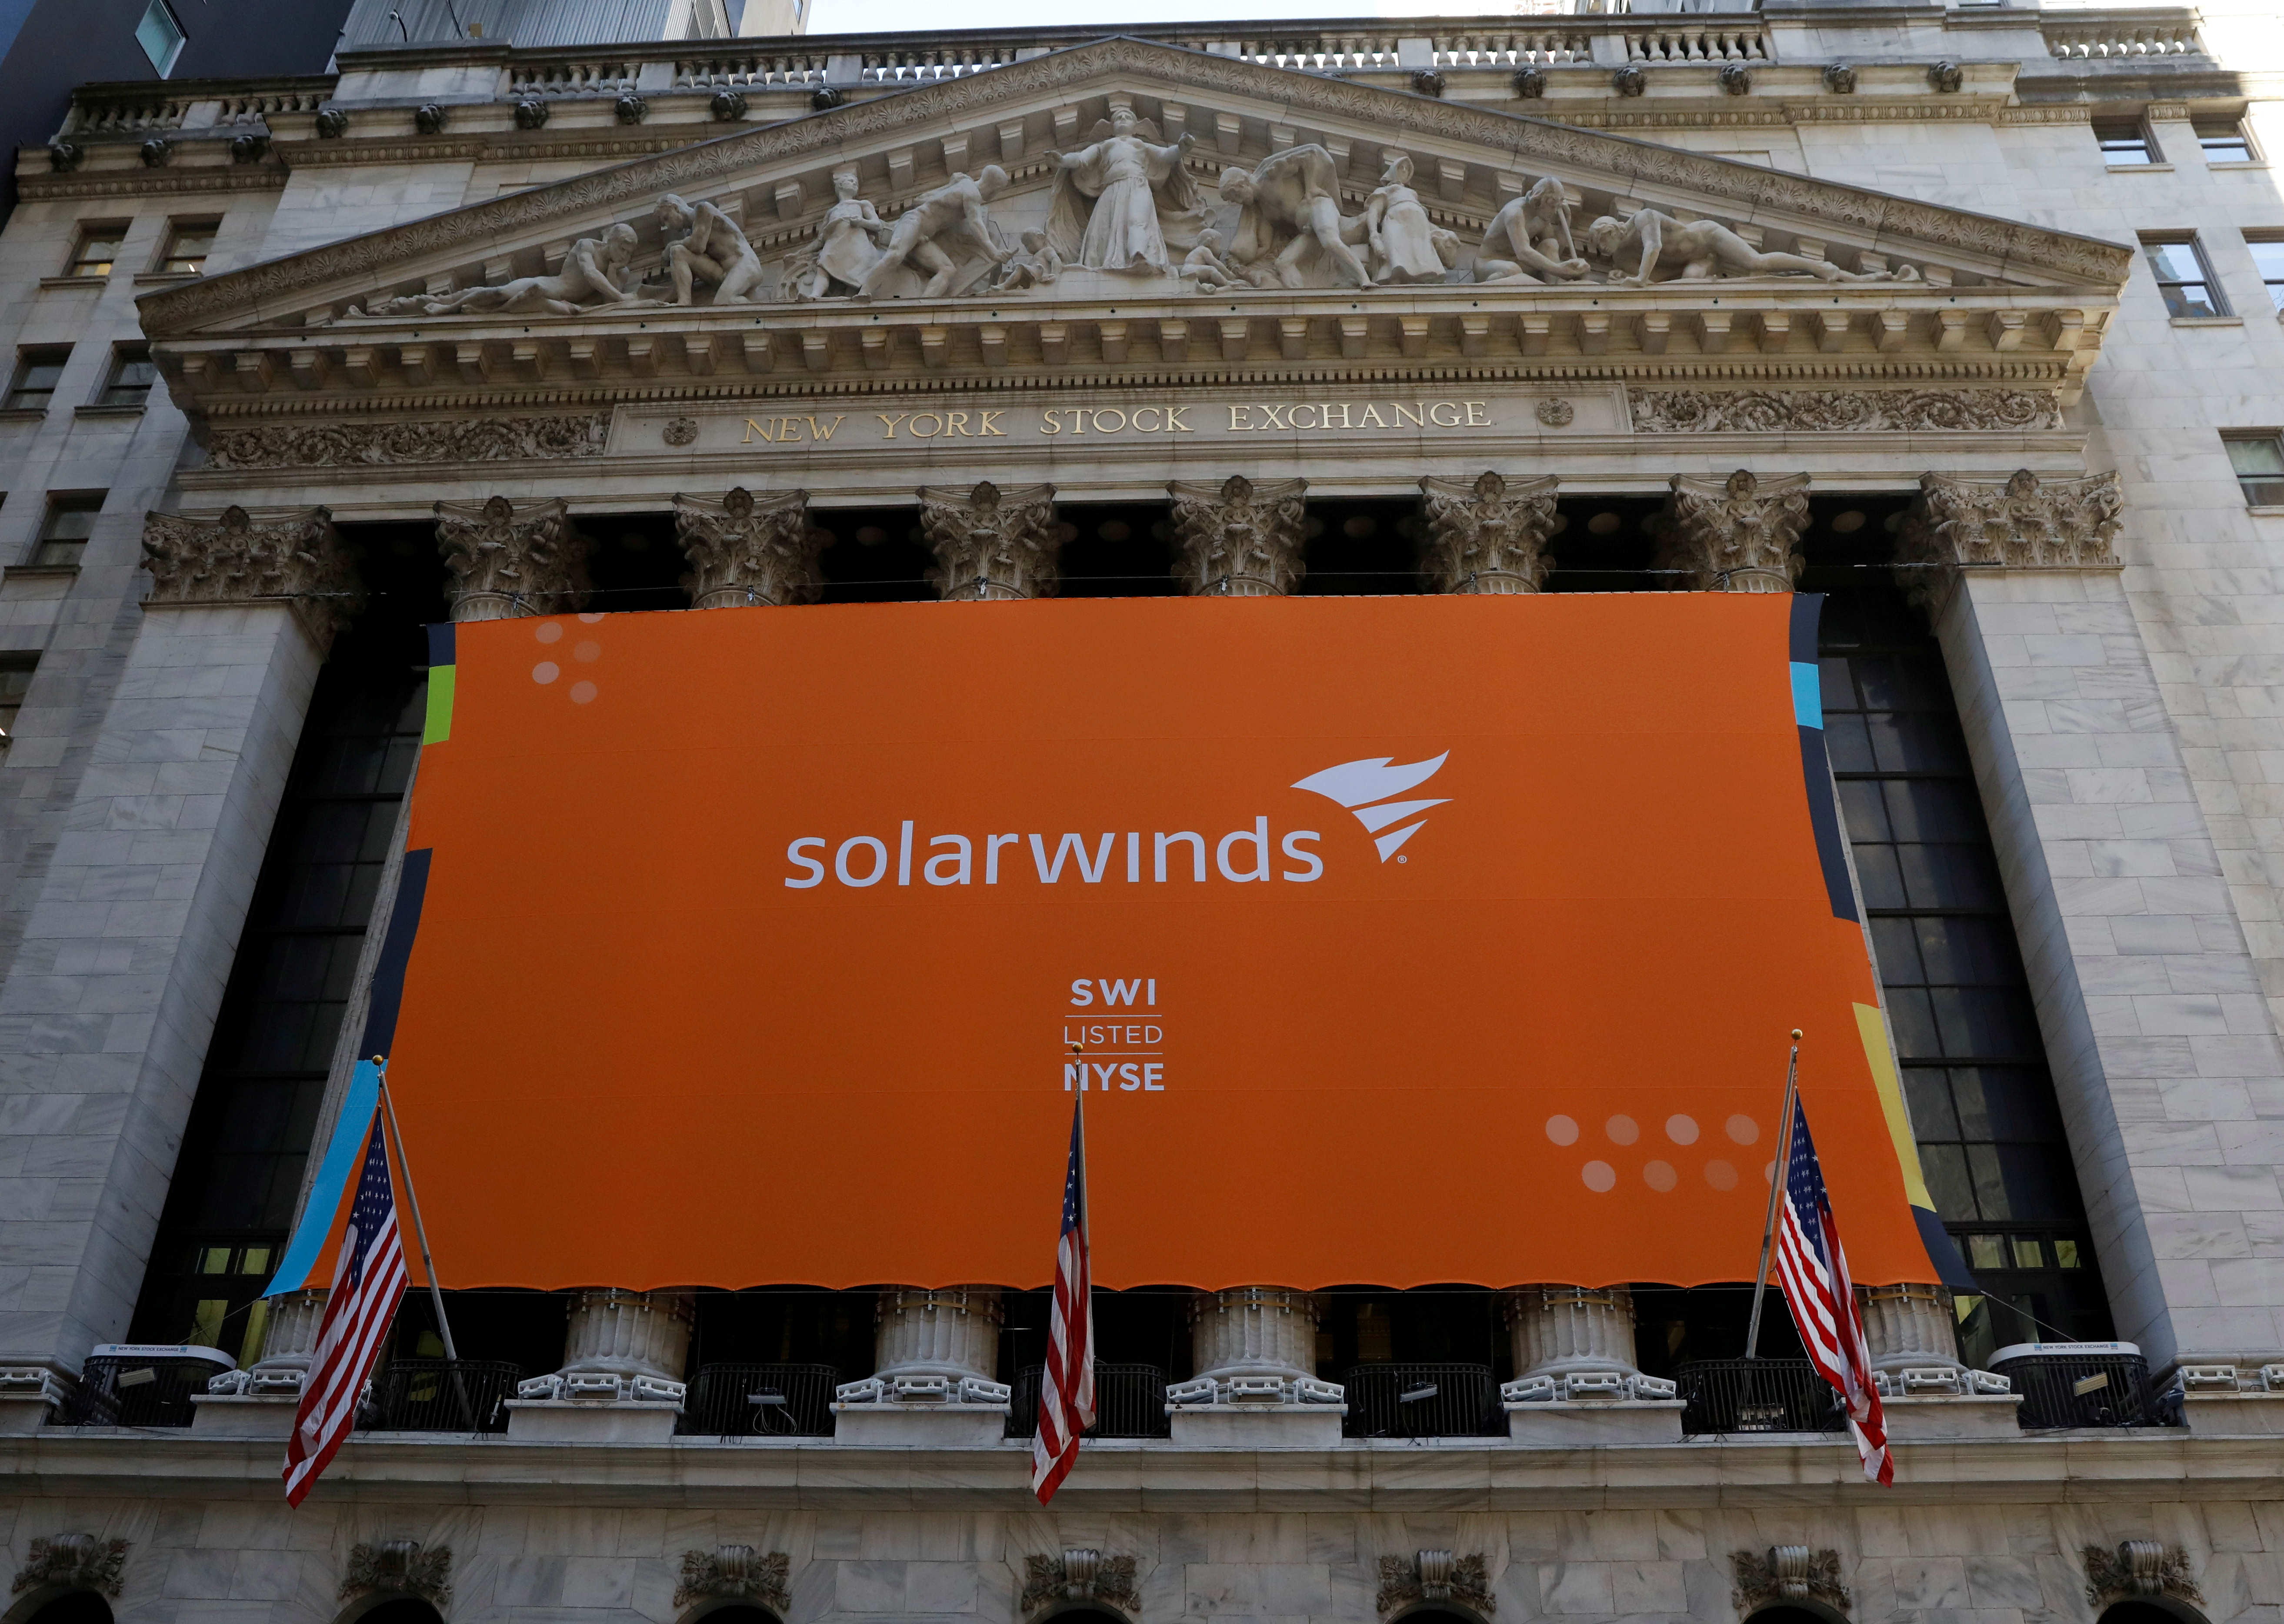 SolarWinds Corp banner hangs at the New York Stock Exchange (NYSE) on the IPO day of the company in New York, U.S., October 19, 2018. REUTERS/Brendan McDermid/File Photo